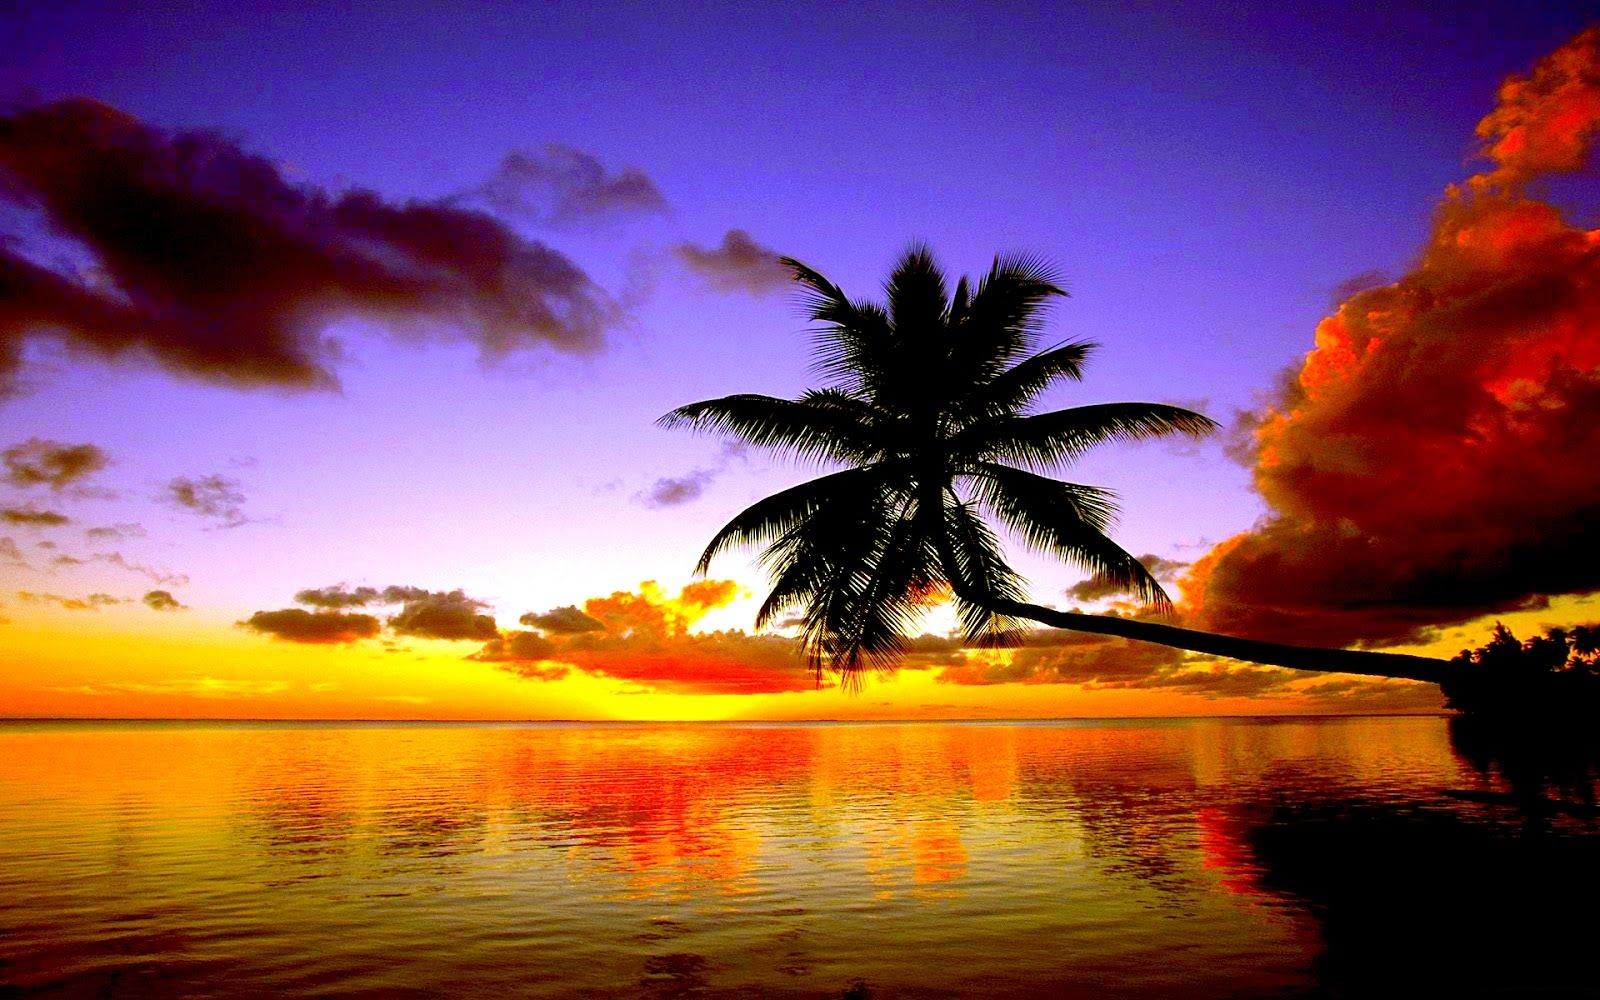 Hd Tropical Island Beach Paradise Wallpapers And Backgrounds: Free HD Wallpapers : Find Best Latest Free HD Wallpapers